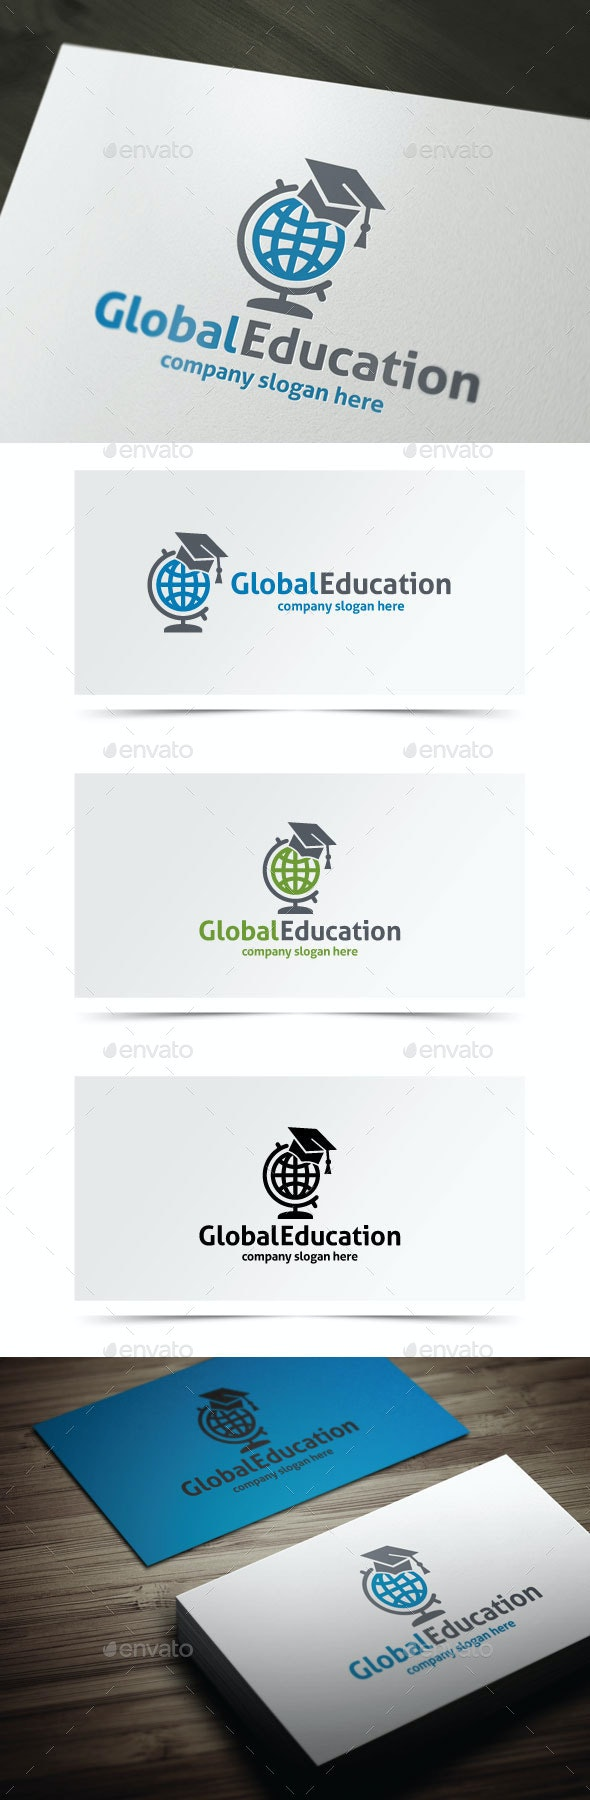 Global Education - College Logo Templates